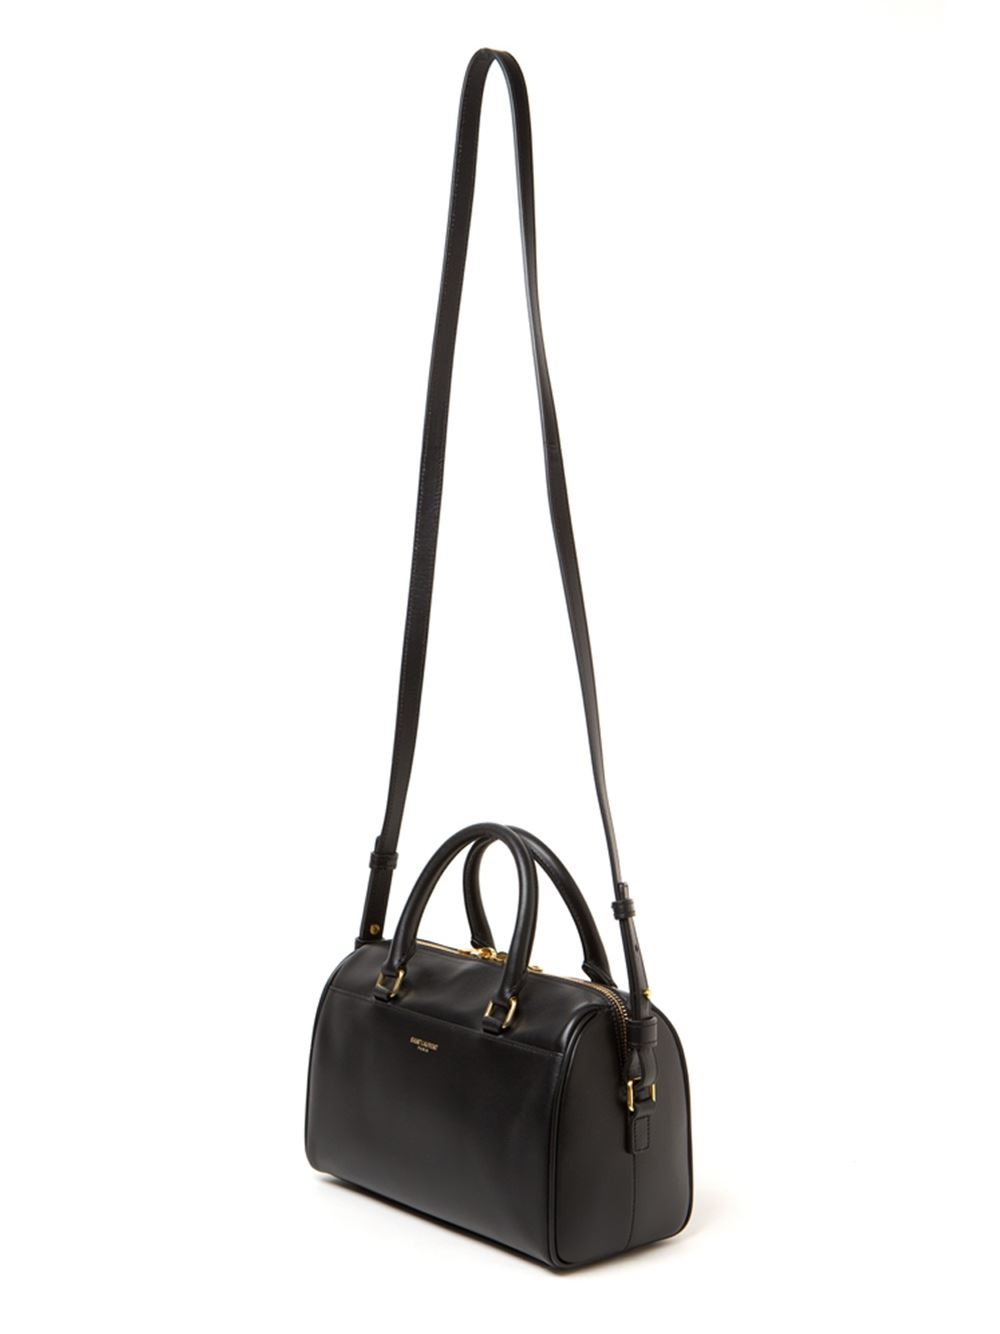 ysl cabas chyc small - small duffel saint laurent bag, black